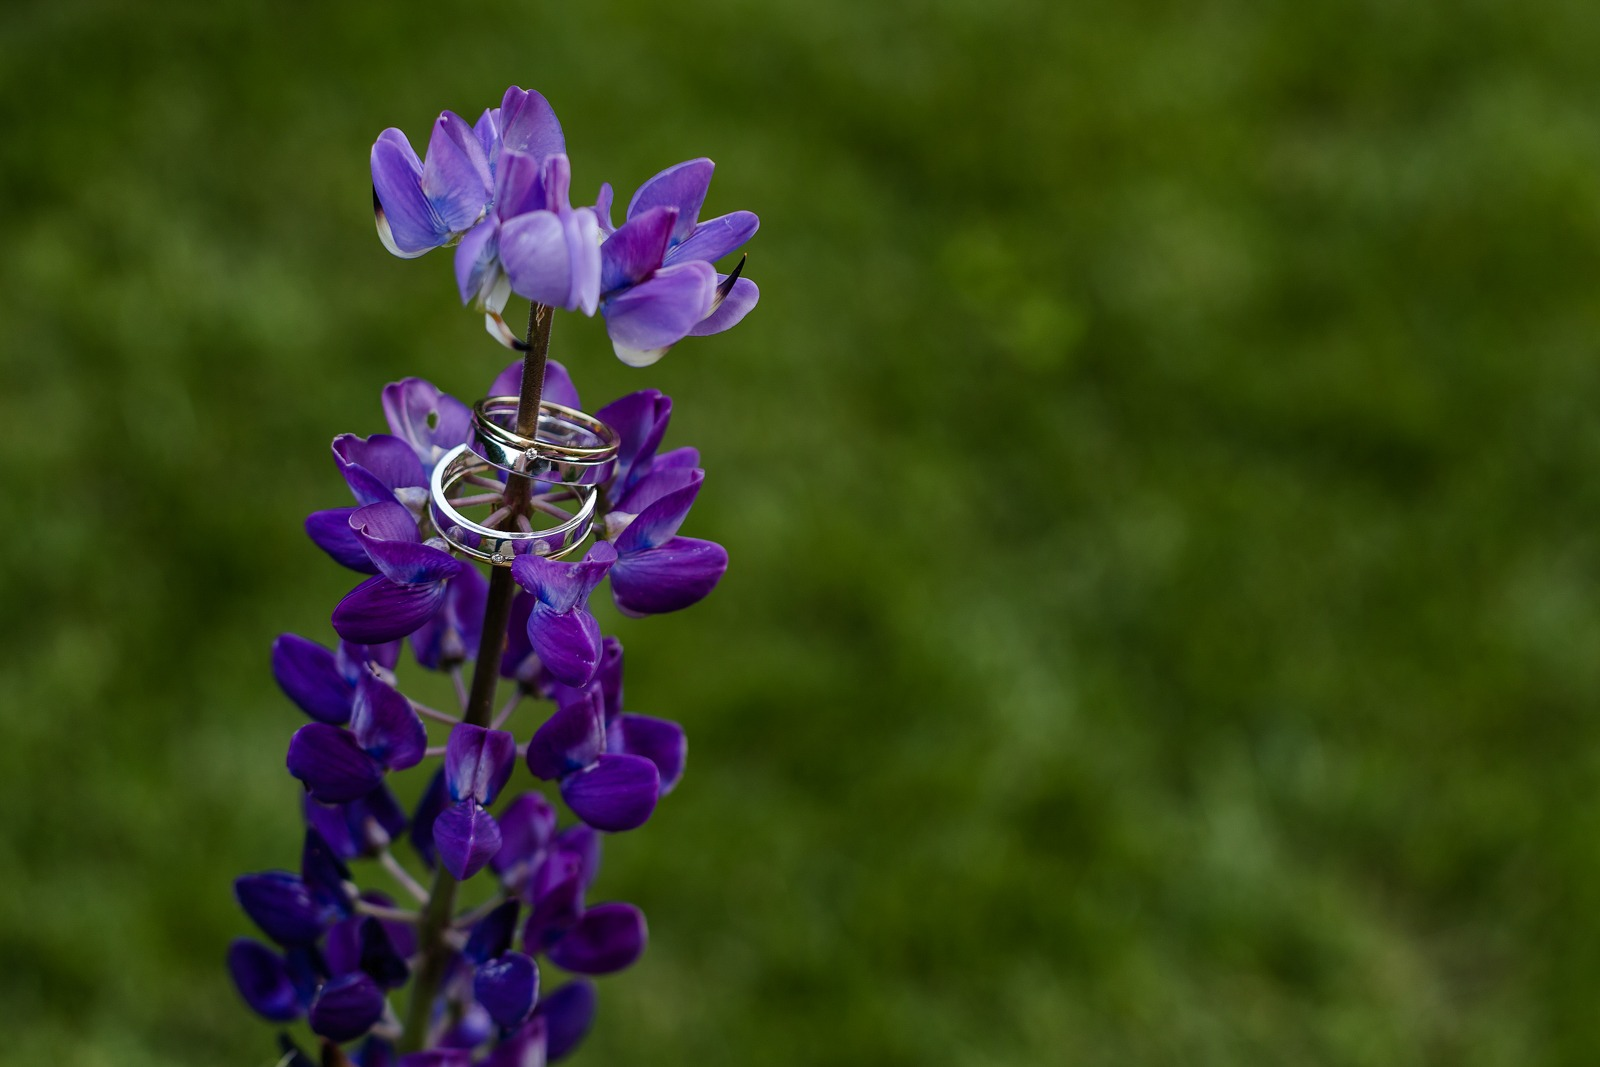 rings-flowers-detail-green-violet-italy-wedding